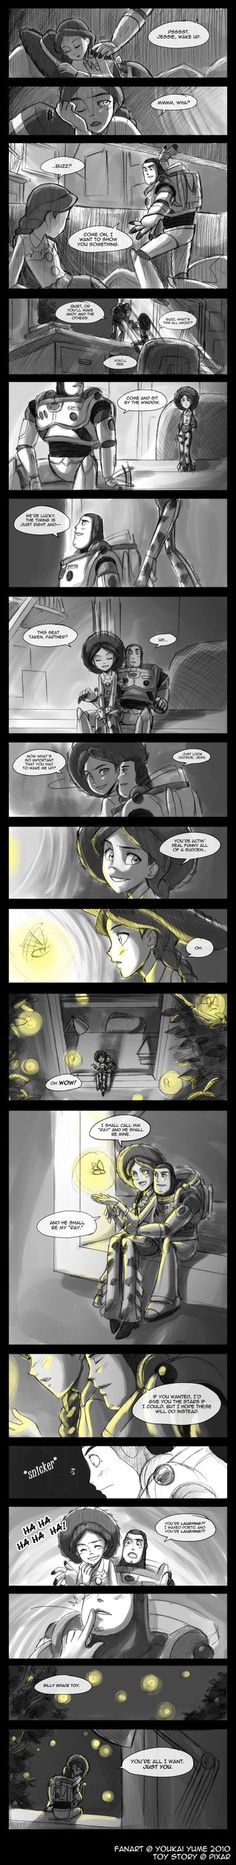 Toy Story: Stars...Sort of. by YoukaiYume on deviantART-----aww how romantic